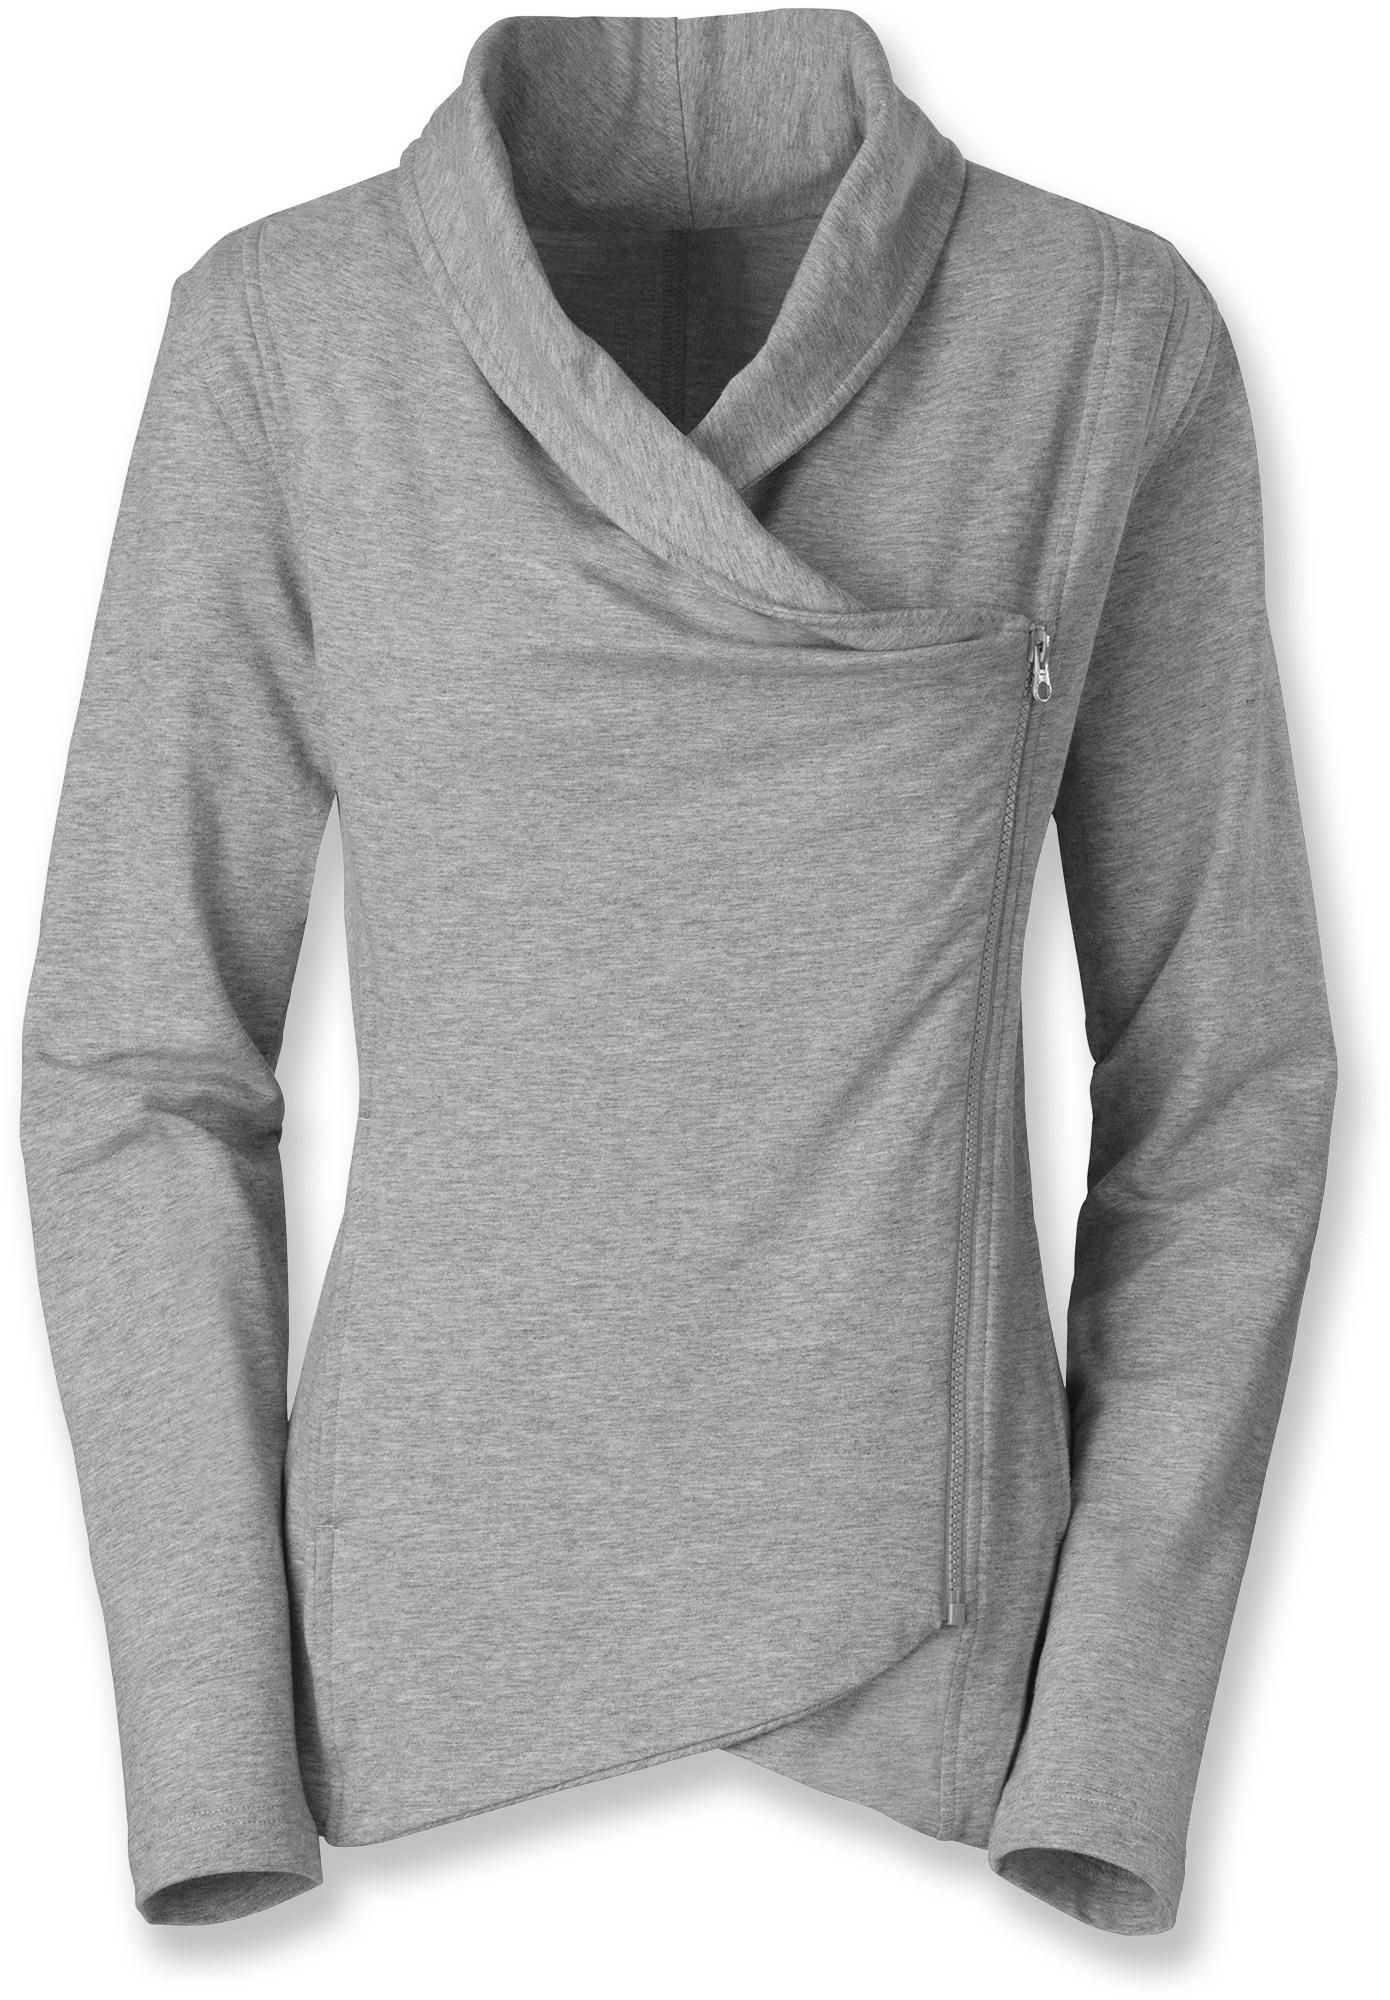 Wrap up in The North Face Sharlet Wrap Sweater - Women's. | Gifts ...